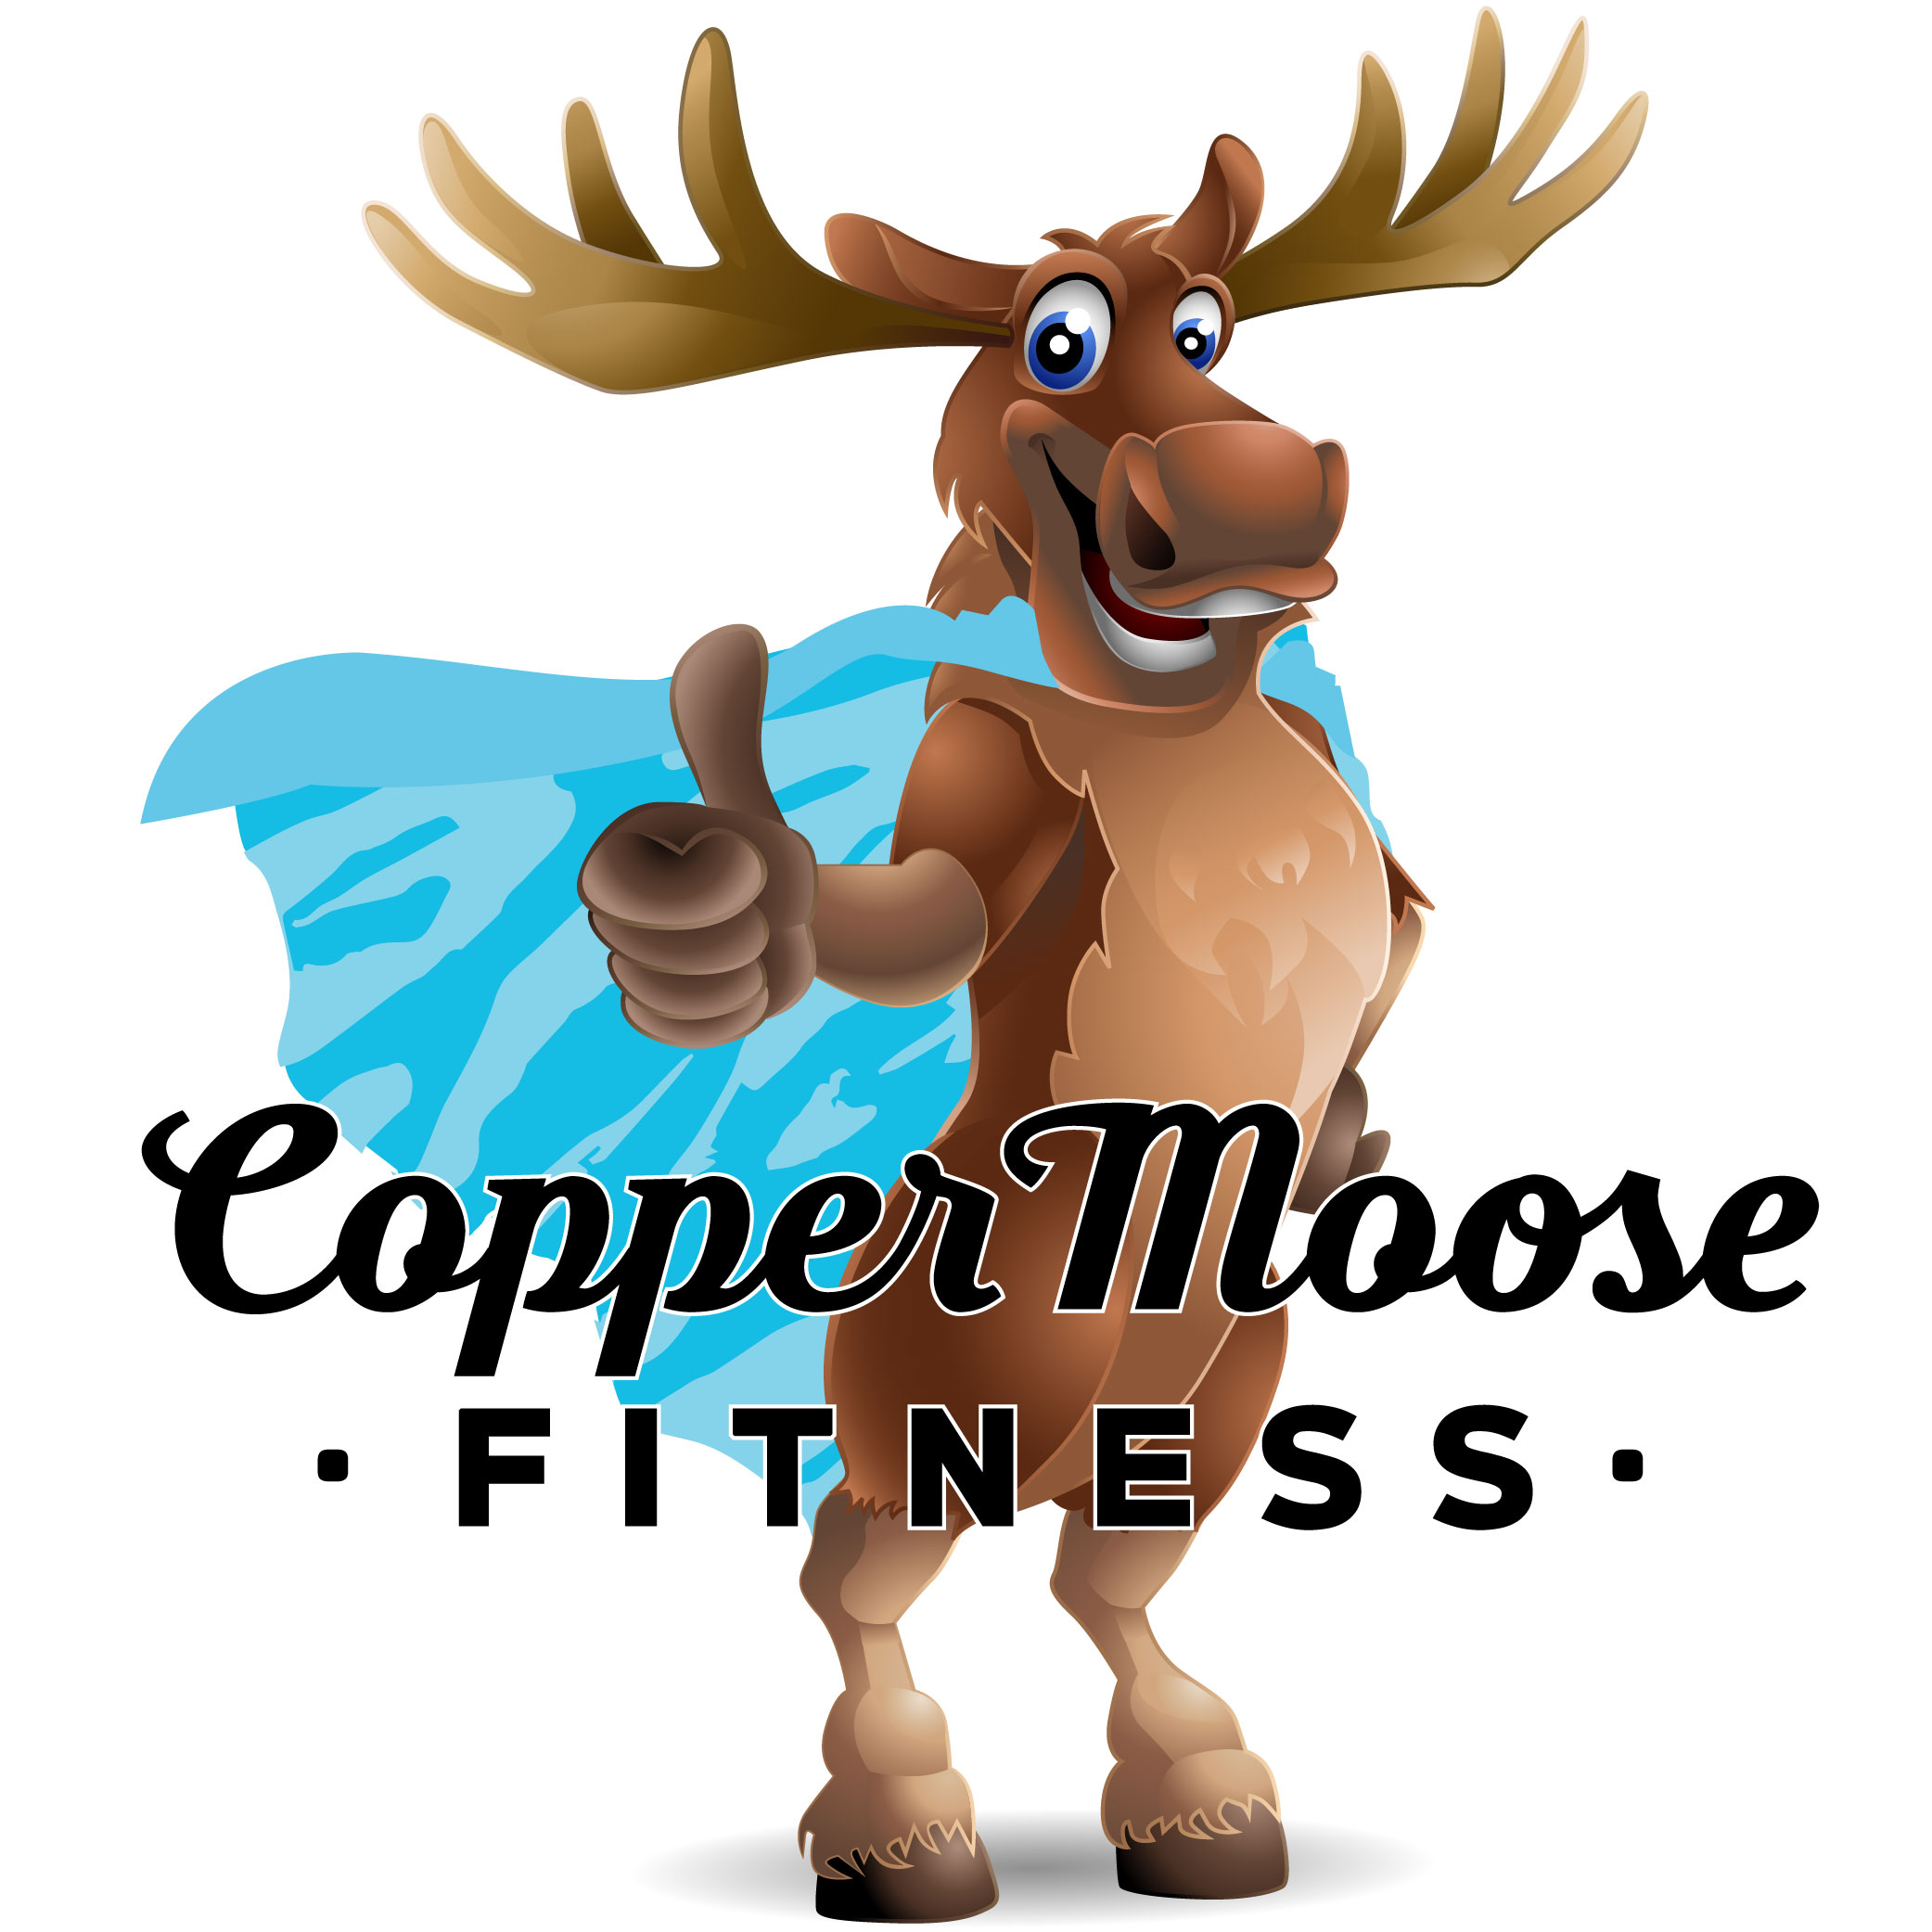 Copper Moose Fitness